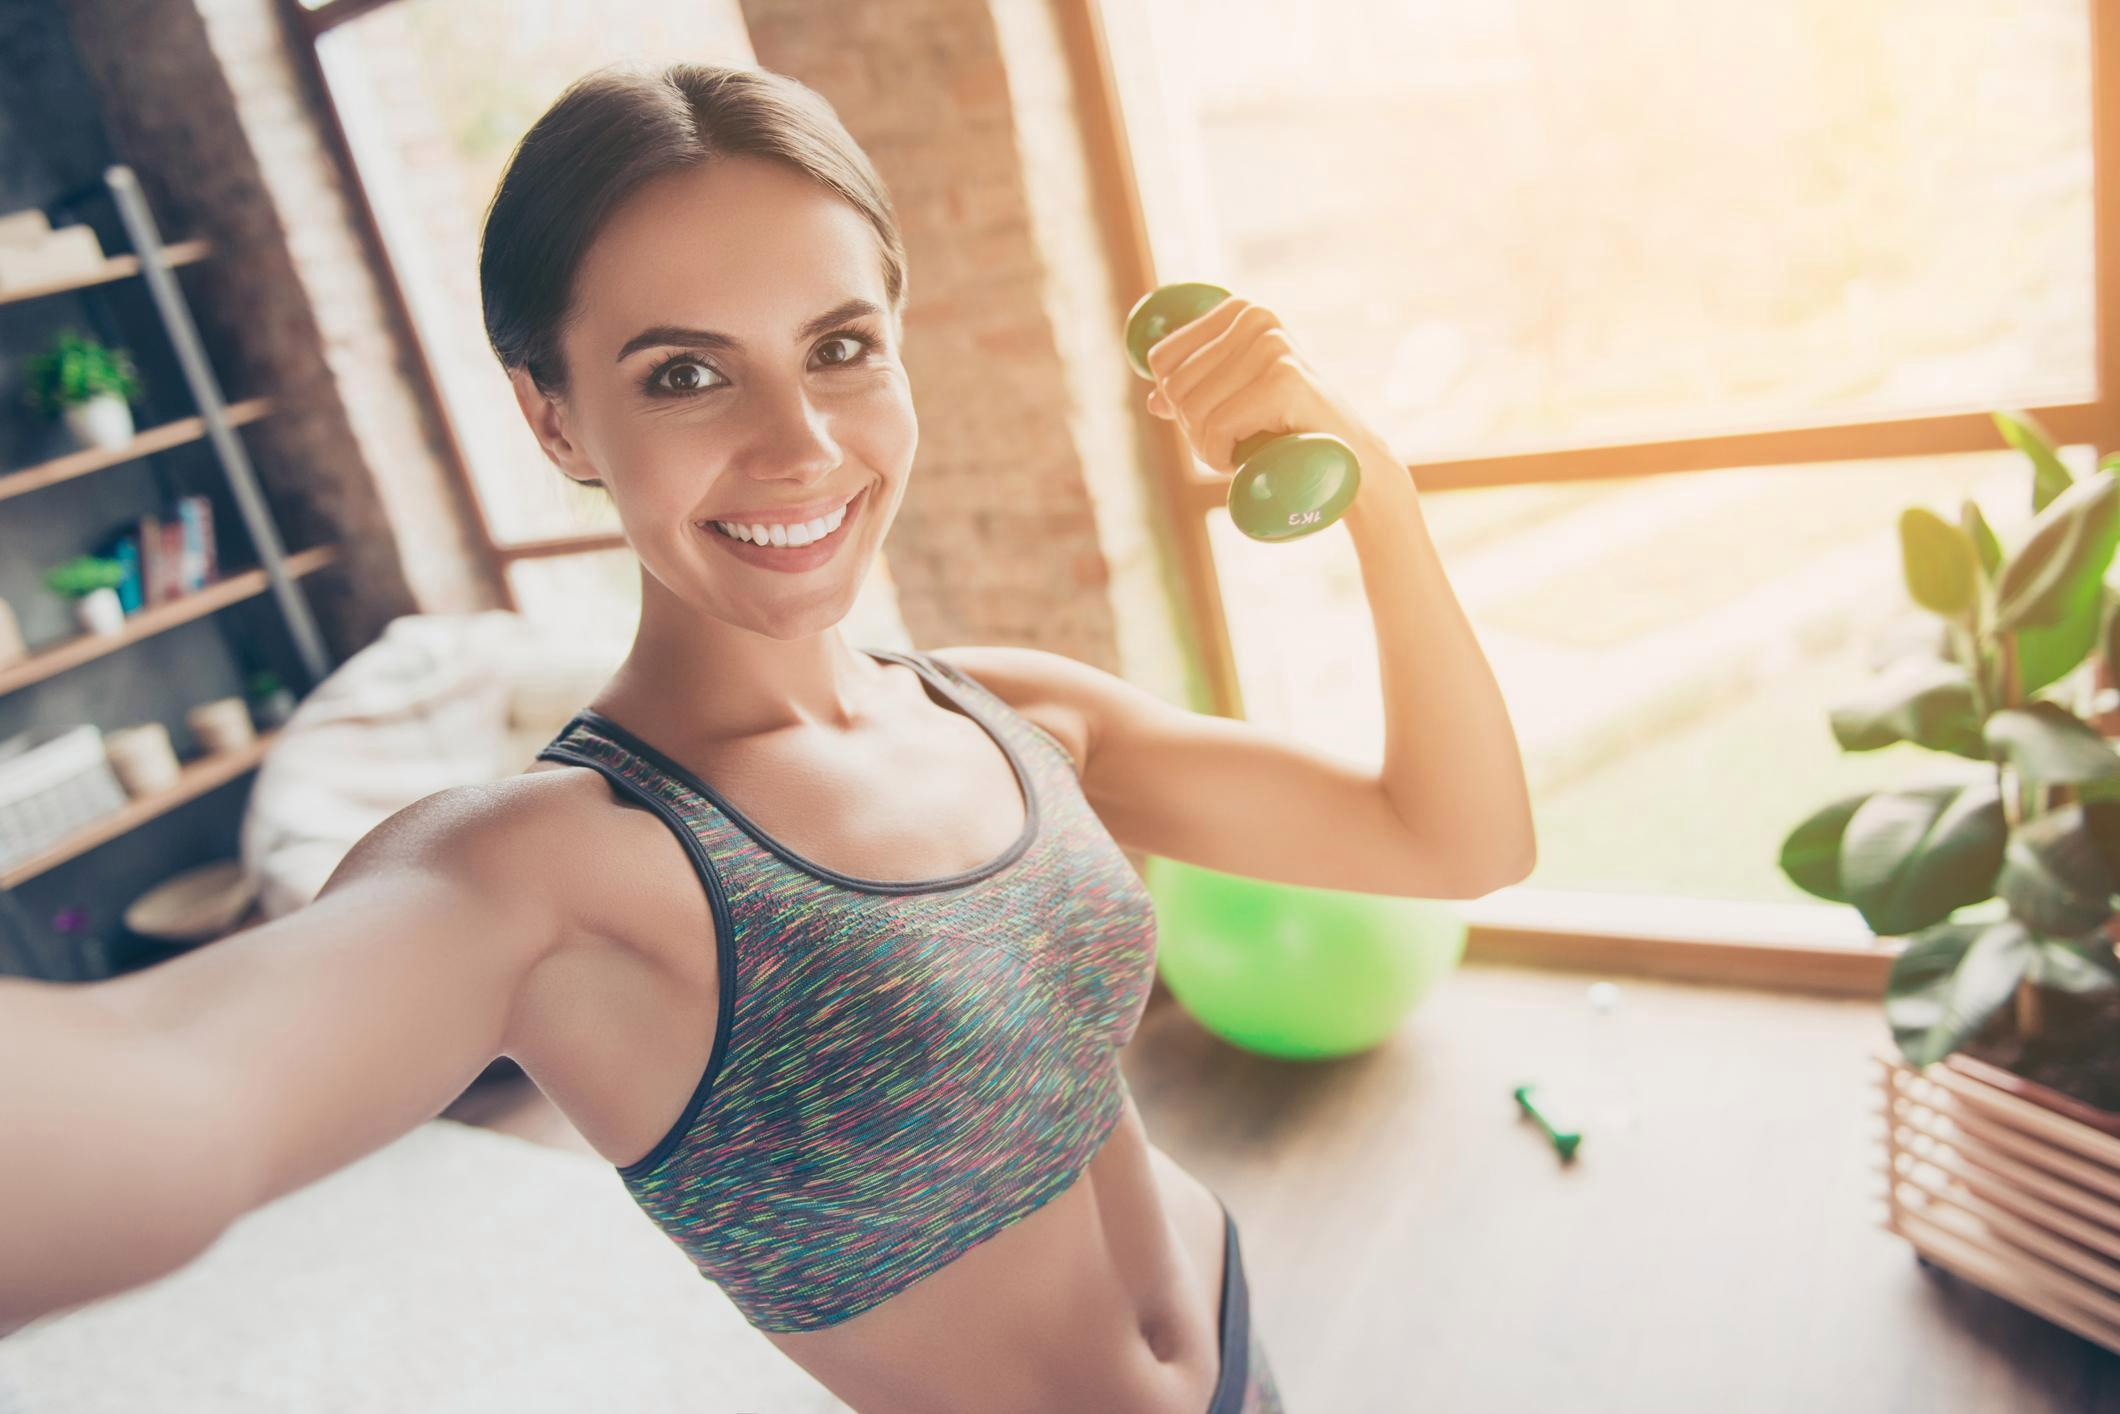 How to get rid of bingo wings -the best exercises and diet tips to get your arms summer ready